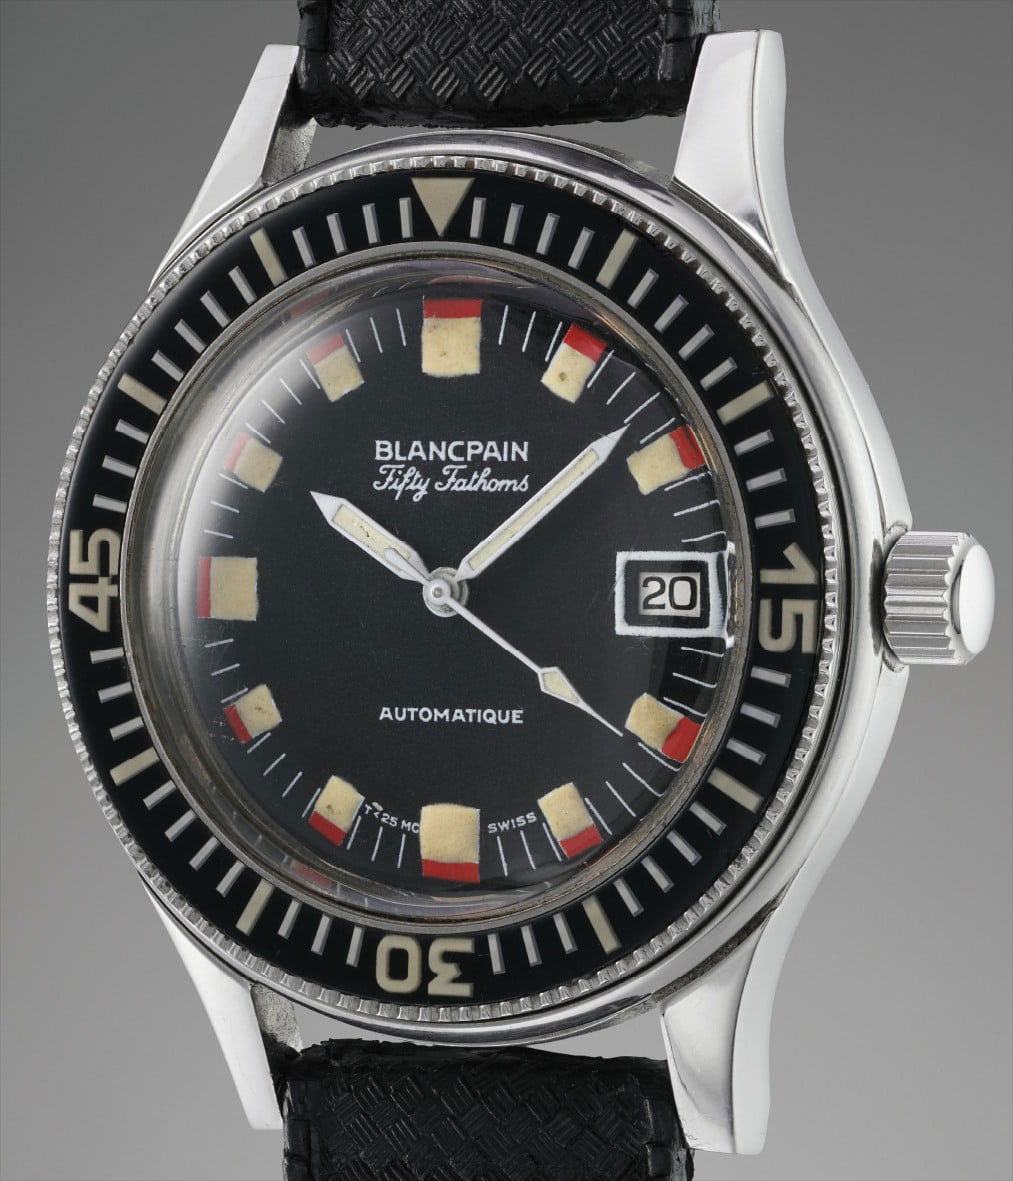 A military-issue Blancpain Baracuda from the 1970s, sold by Phillips Watches at their Geneva Watch Auction: Seven in 2018 (Image: PhillipsWatches.com)